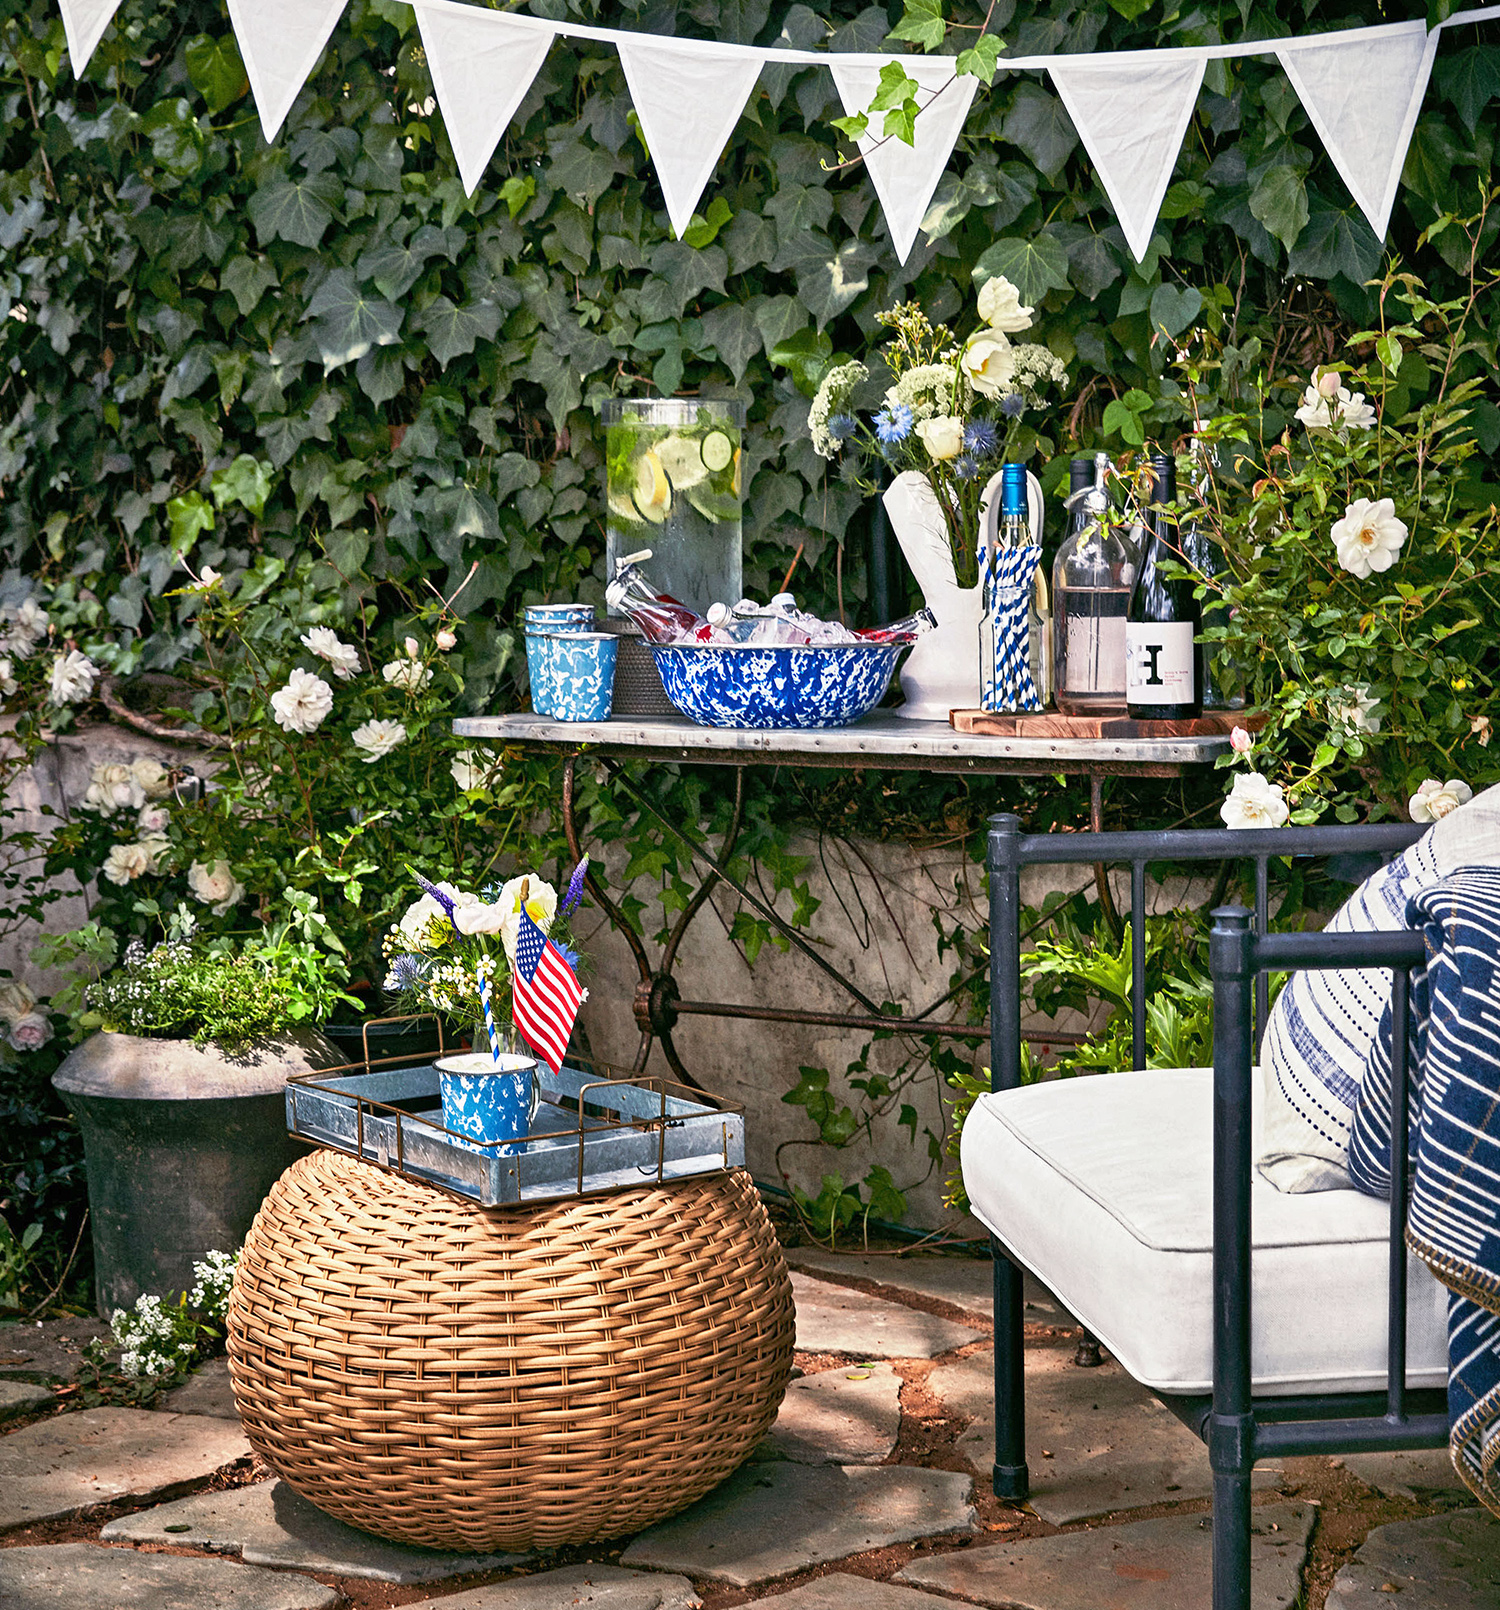 outdoor patio hydration station and decor